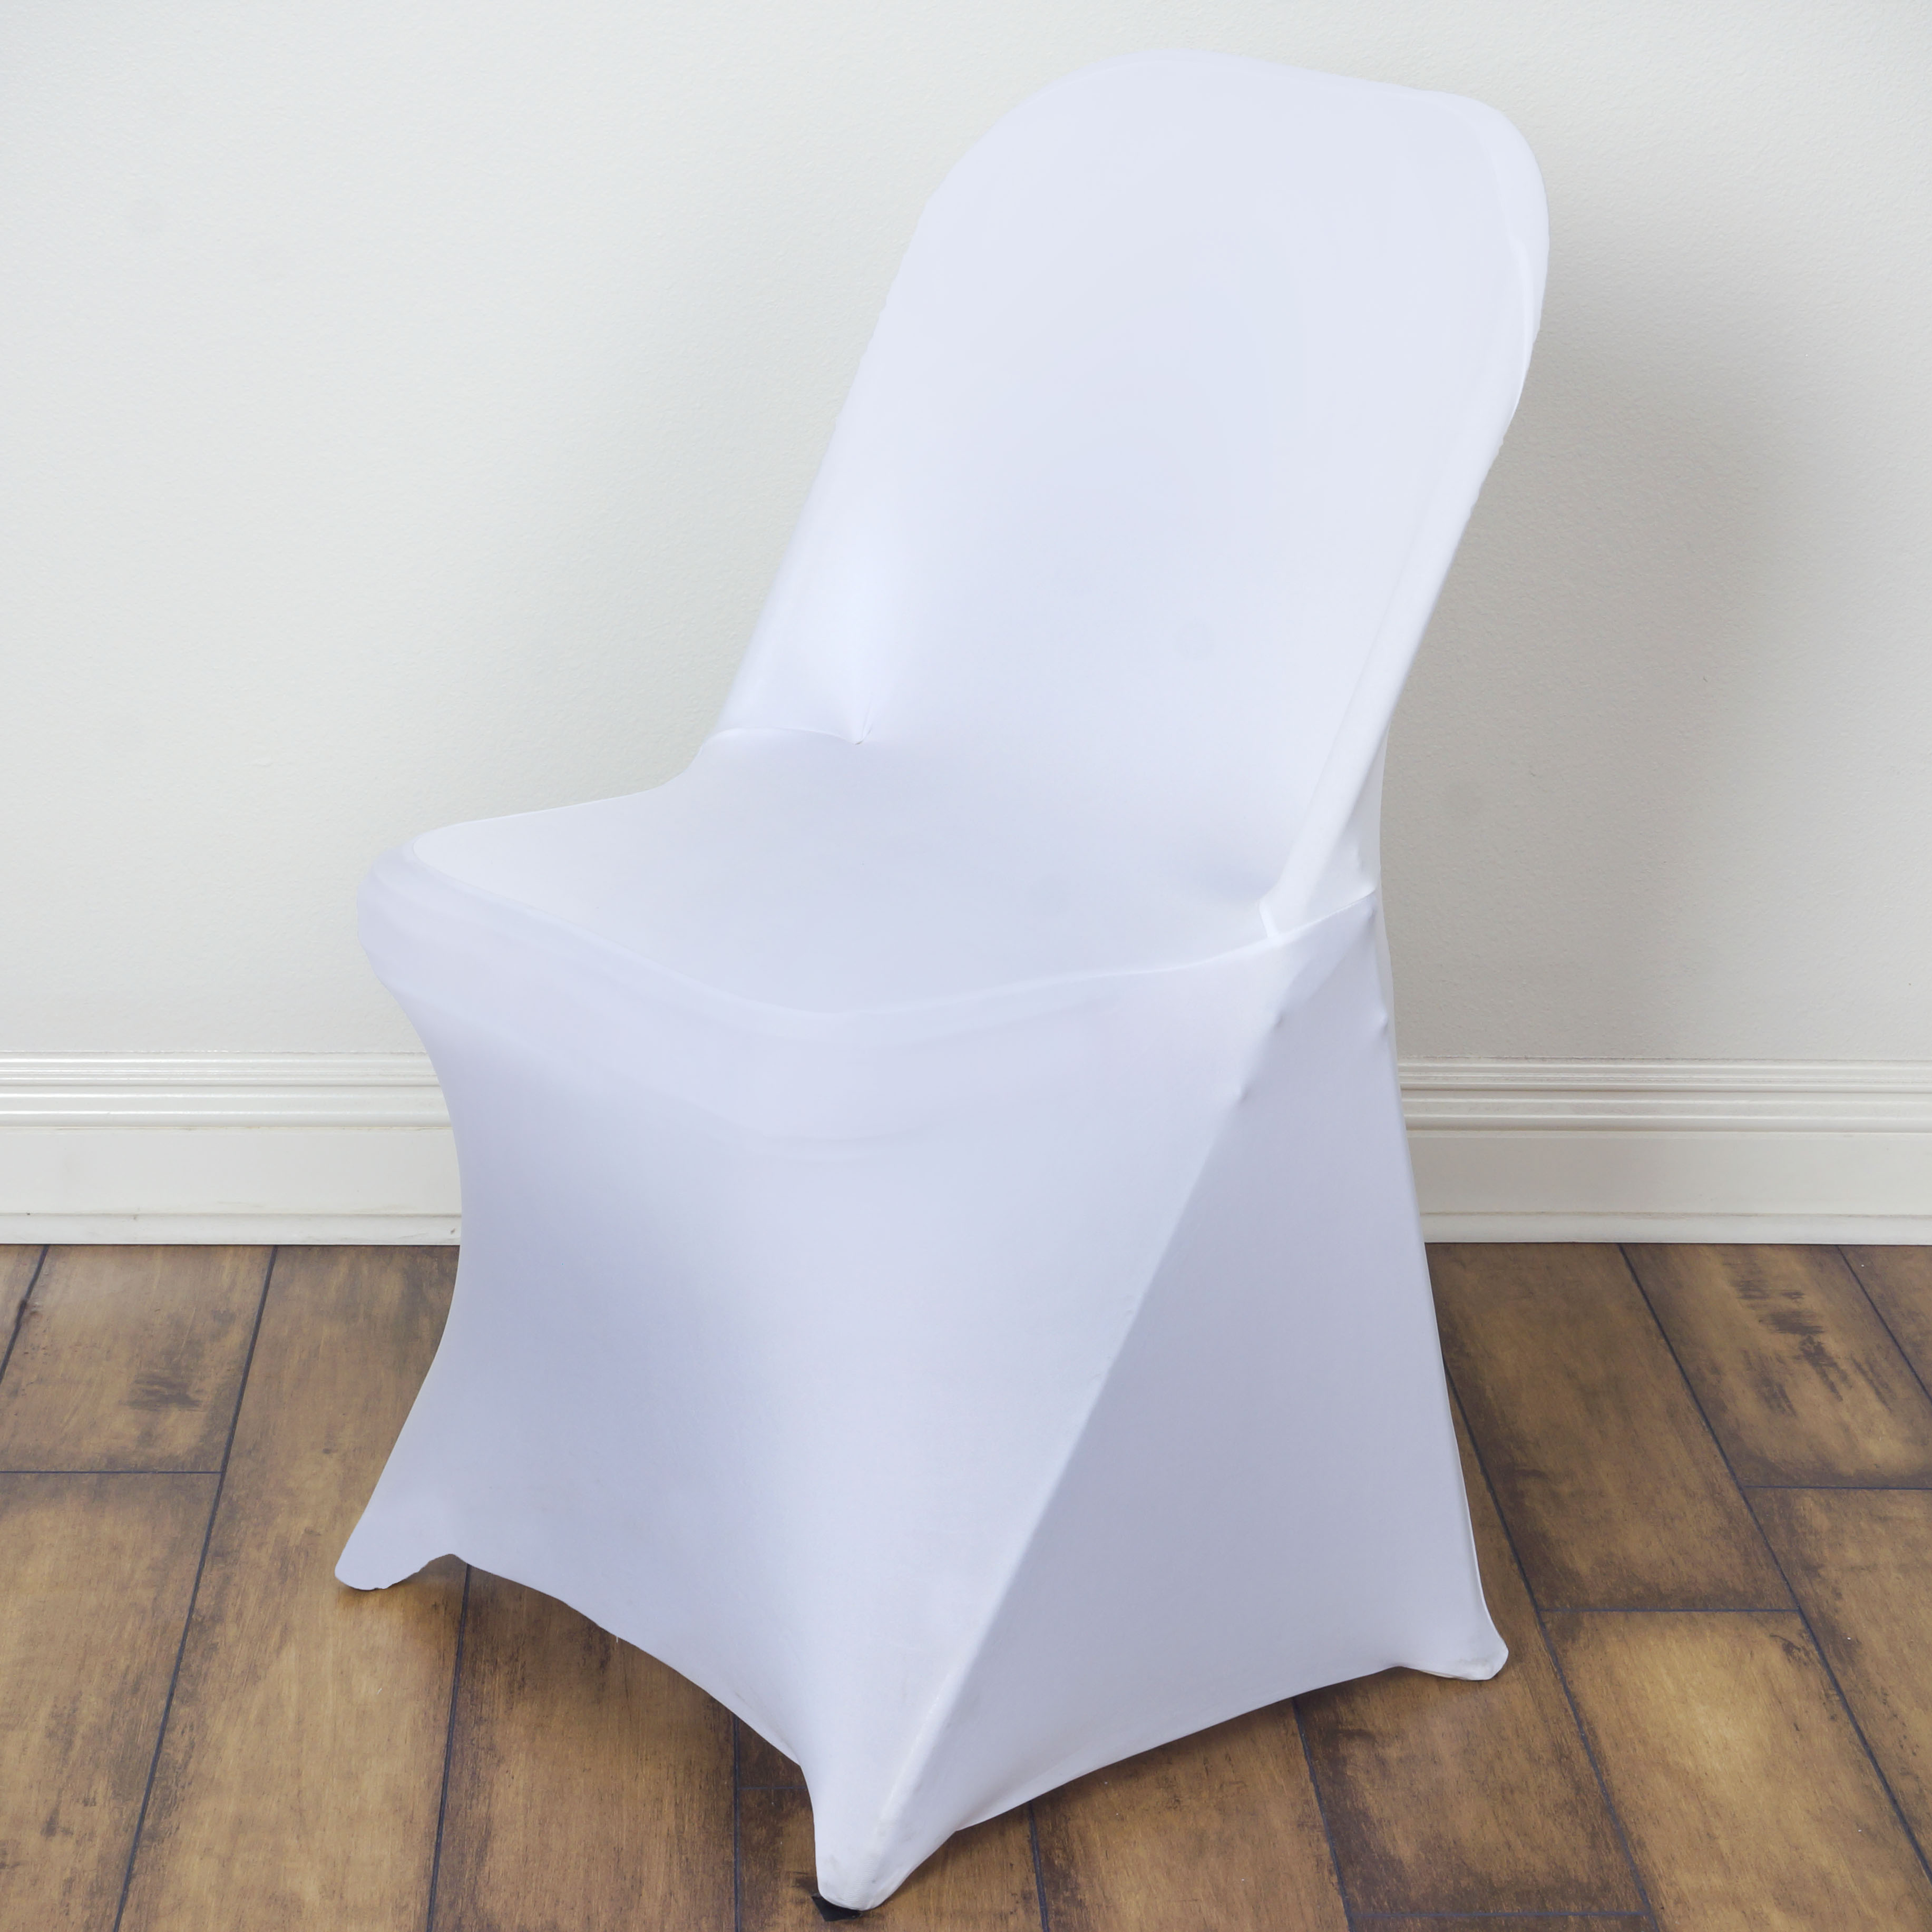 50 pcs Spandex Fitted Folding CHAIR COVERS for Wedding